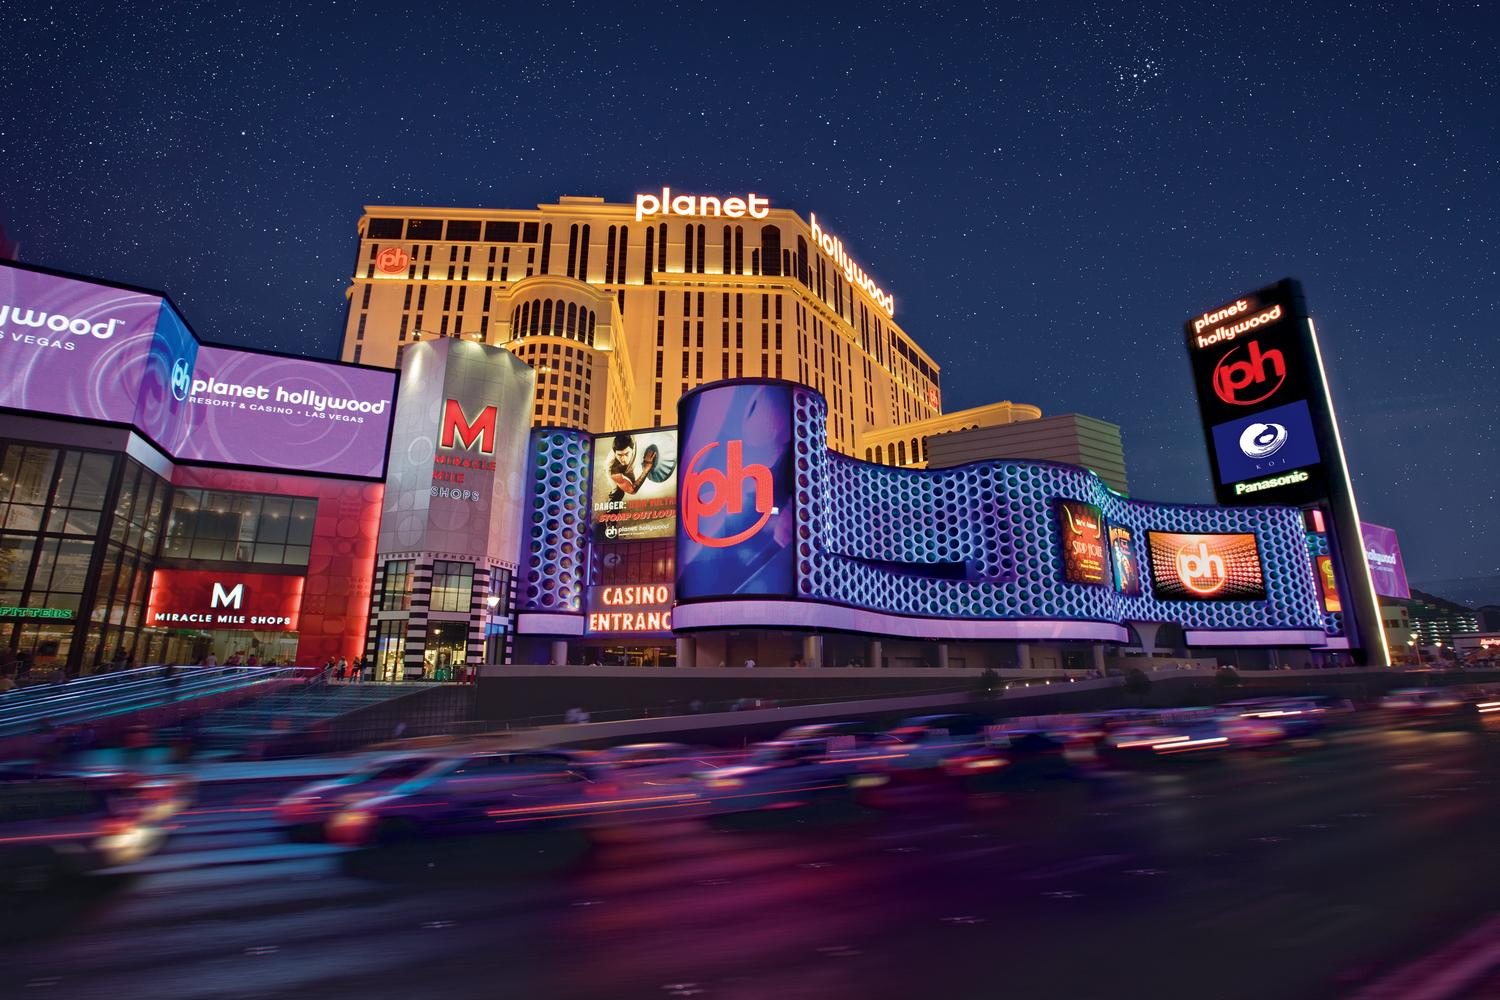 Planet hollywood casino review tropicana casino and resort atlantic city new jersey